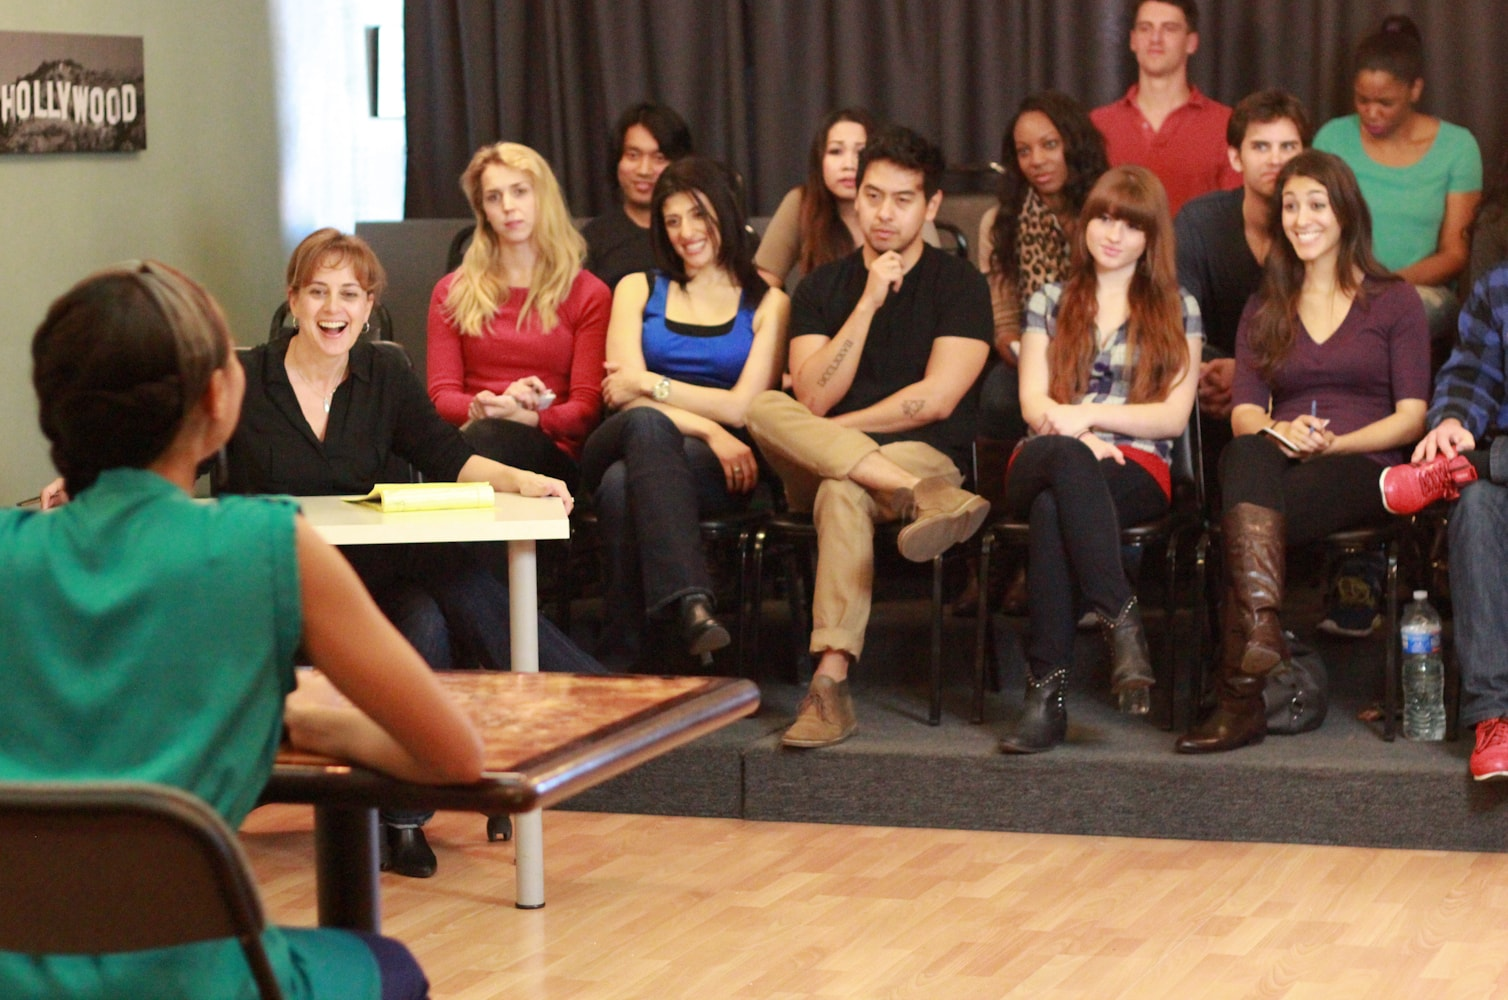 acting class presentation - students and acting coach